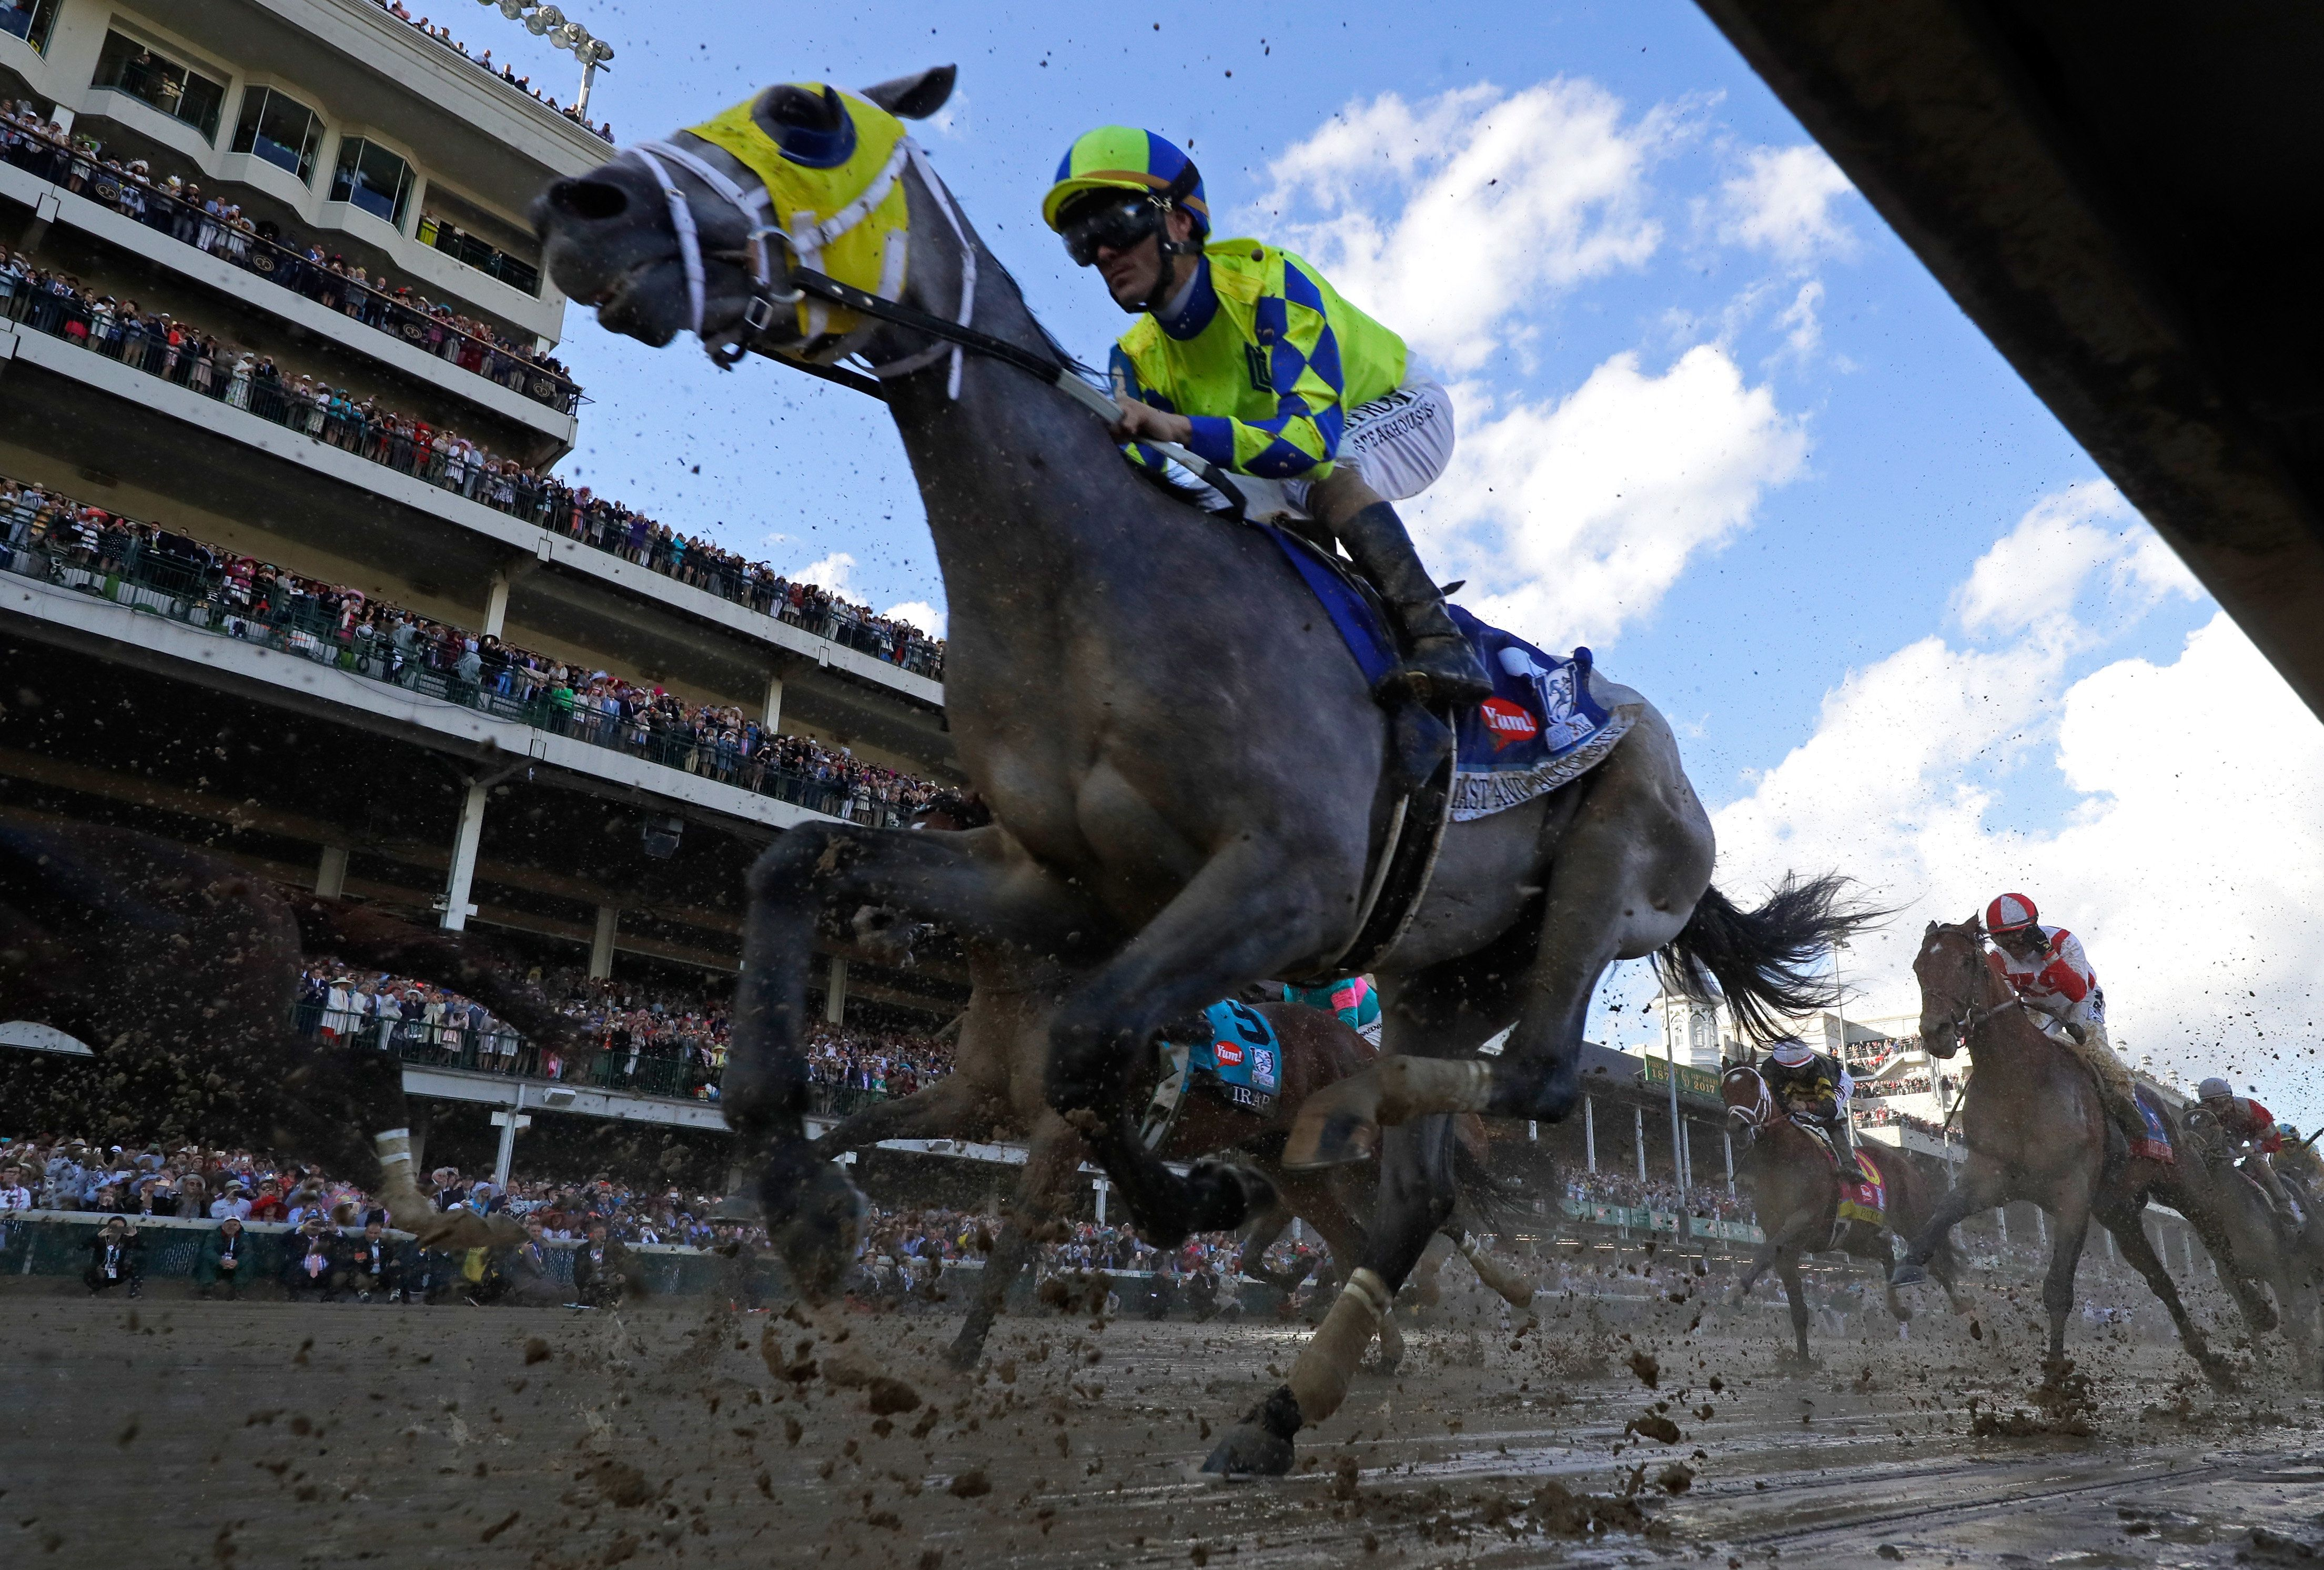 In 2017, jockey John Velazquez won the Kentucky Derby with his horse Always Dreaming. Here's how the popular expression